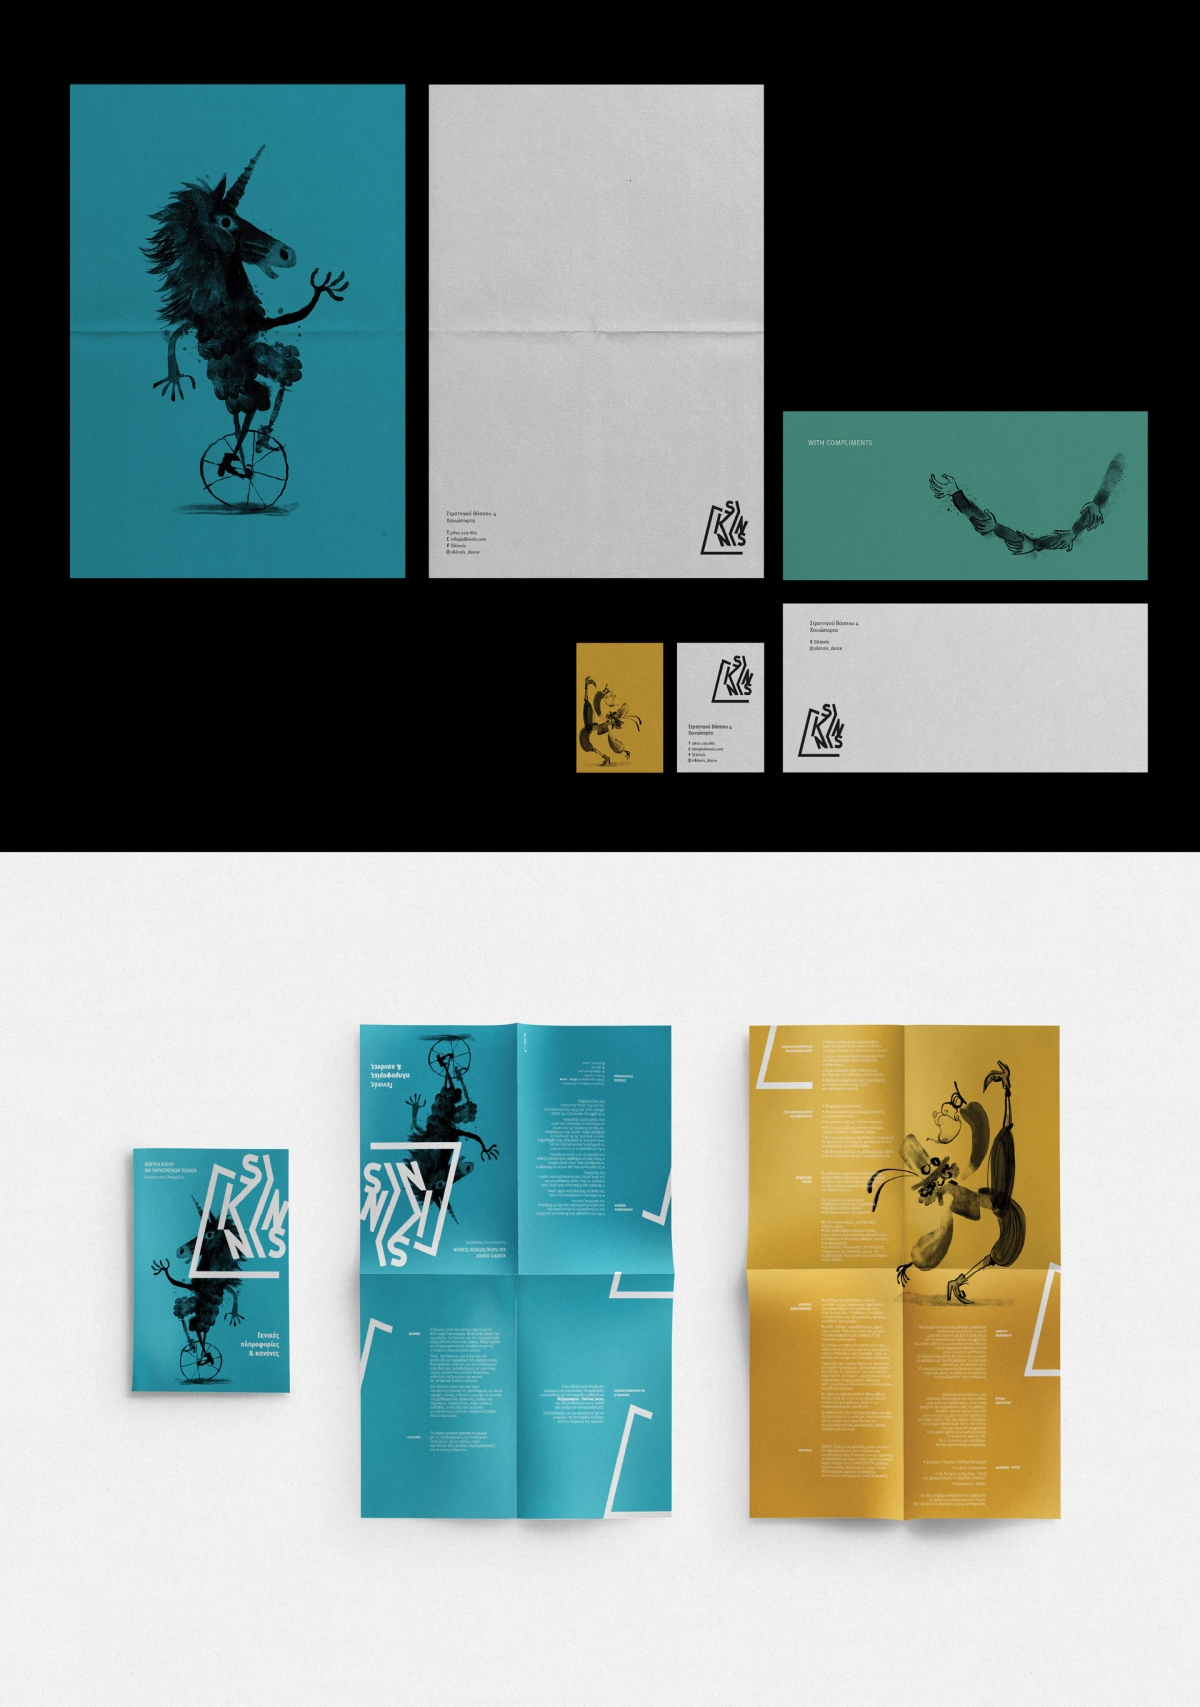 The Sikinnis stationery applications with a brochure design